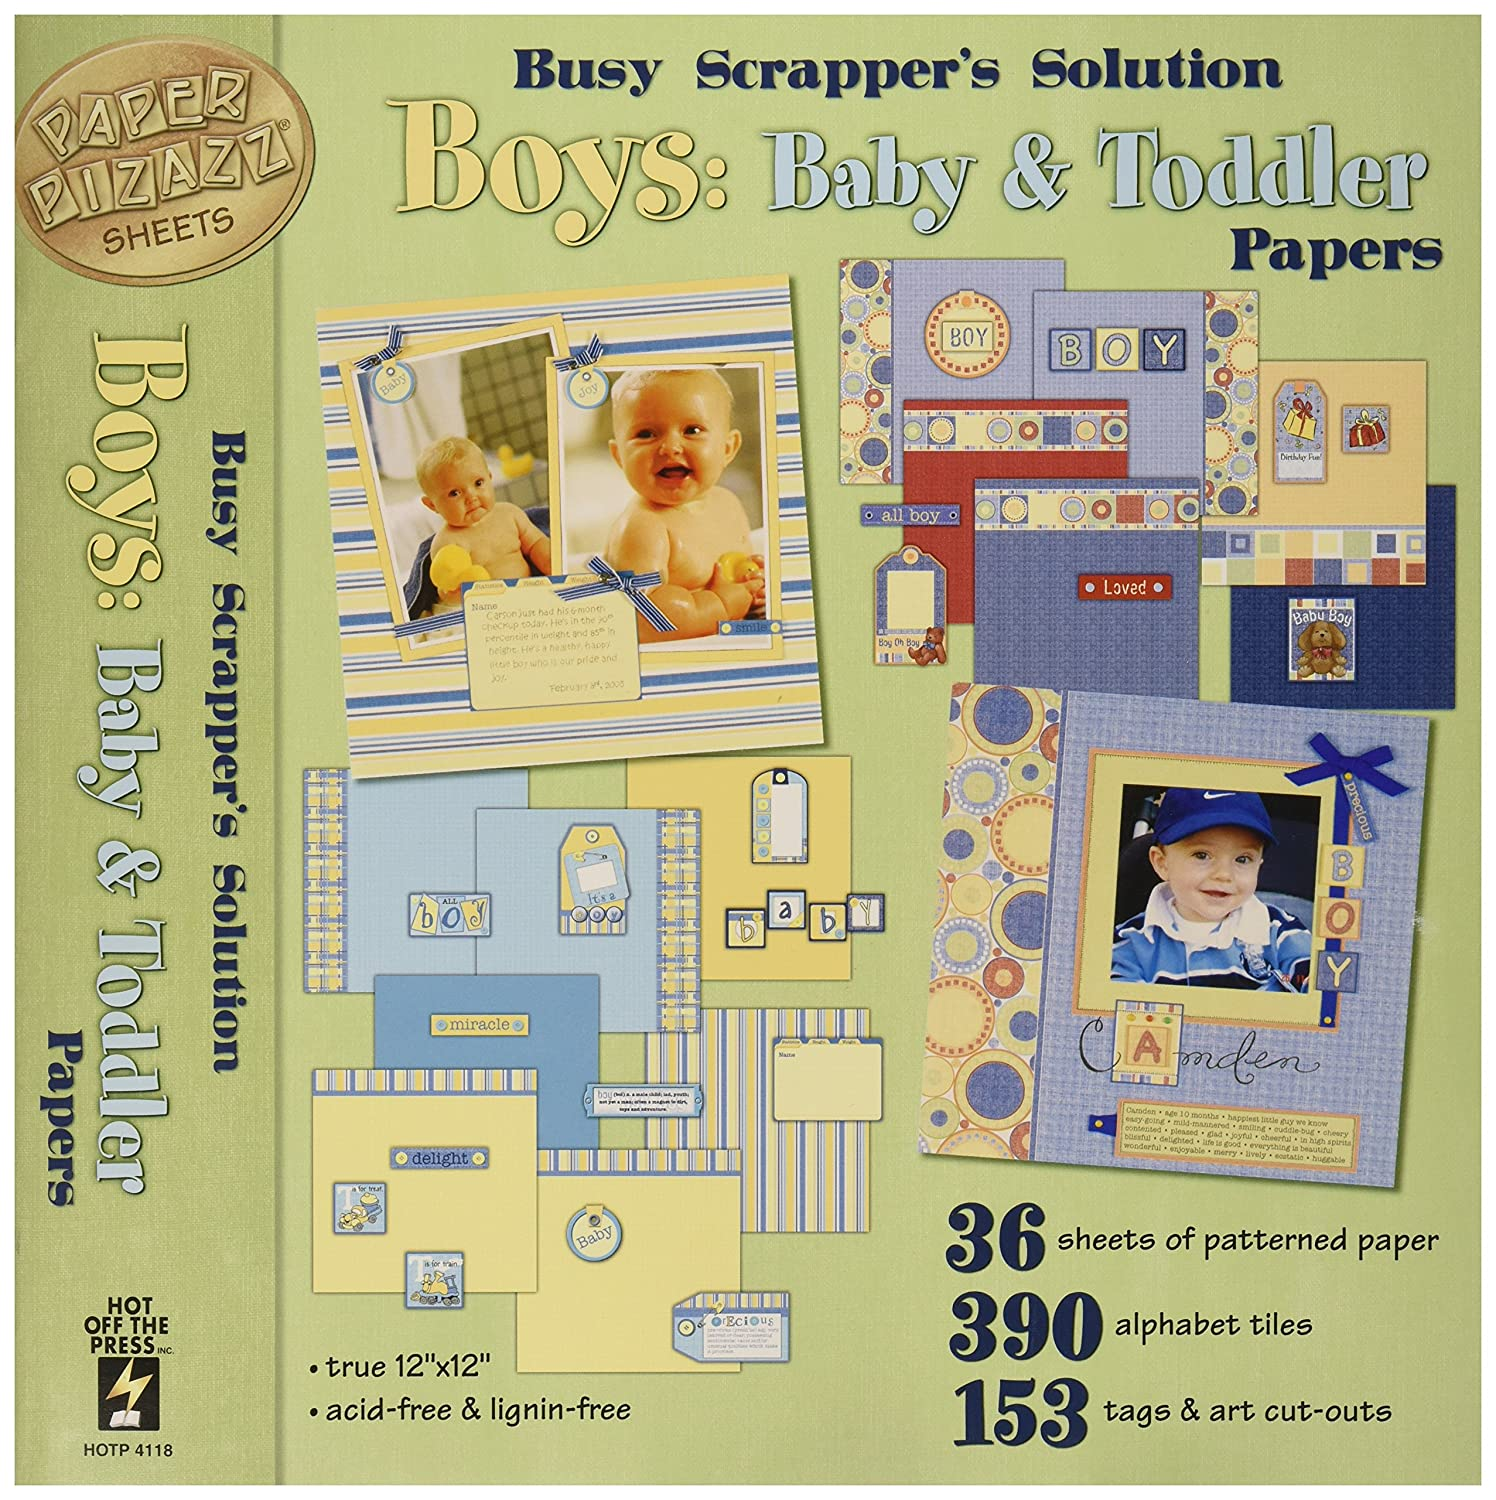 Hot Off The Press Pizazz Papers and Accents, 12x12-Inch, Boys: Baby and Toddler HFPPP-4118